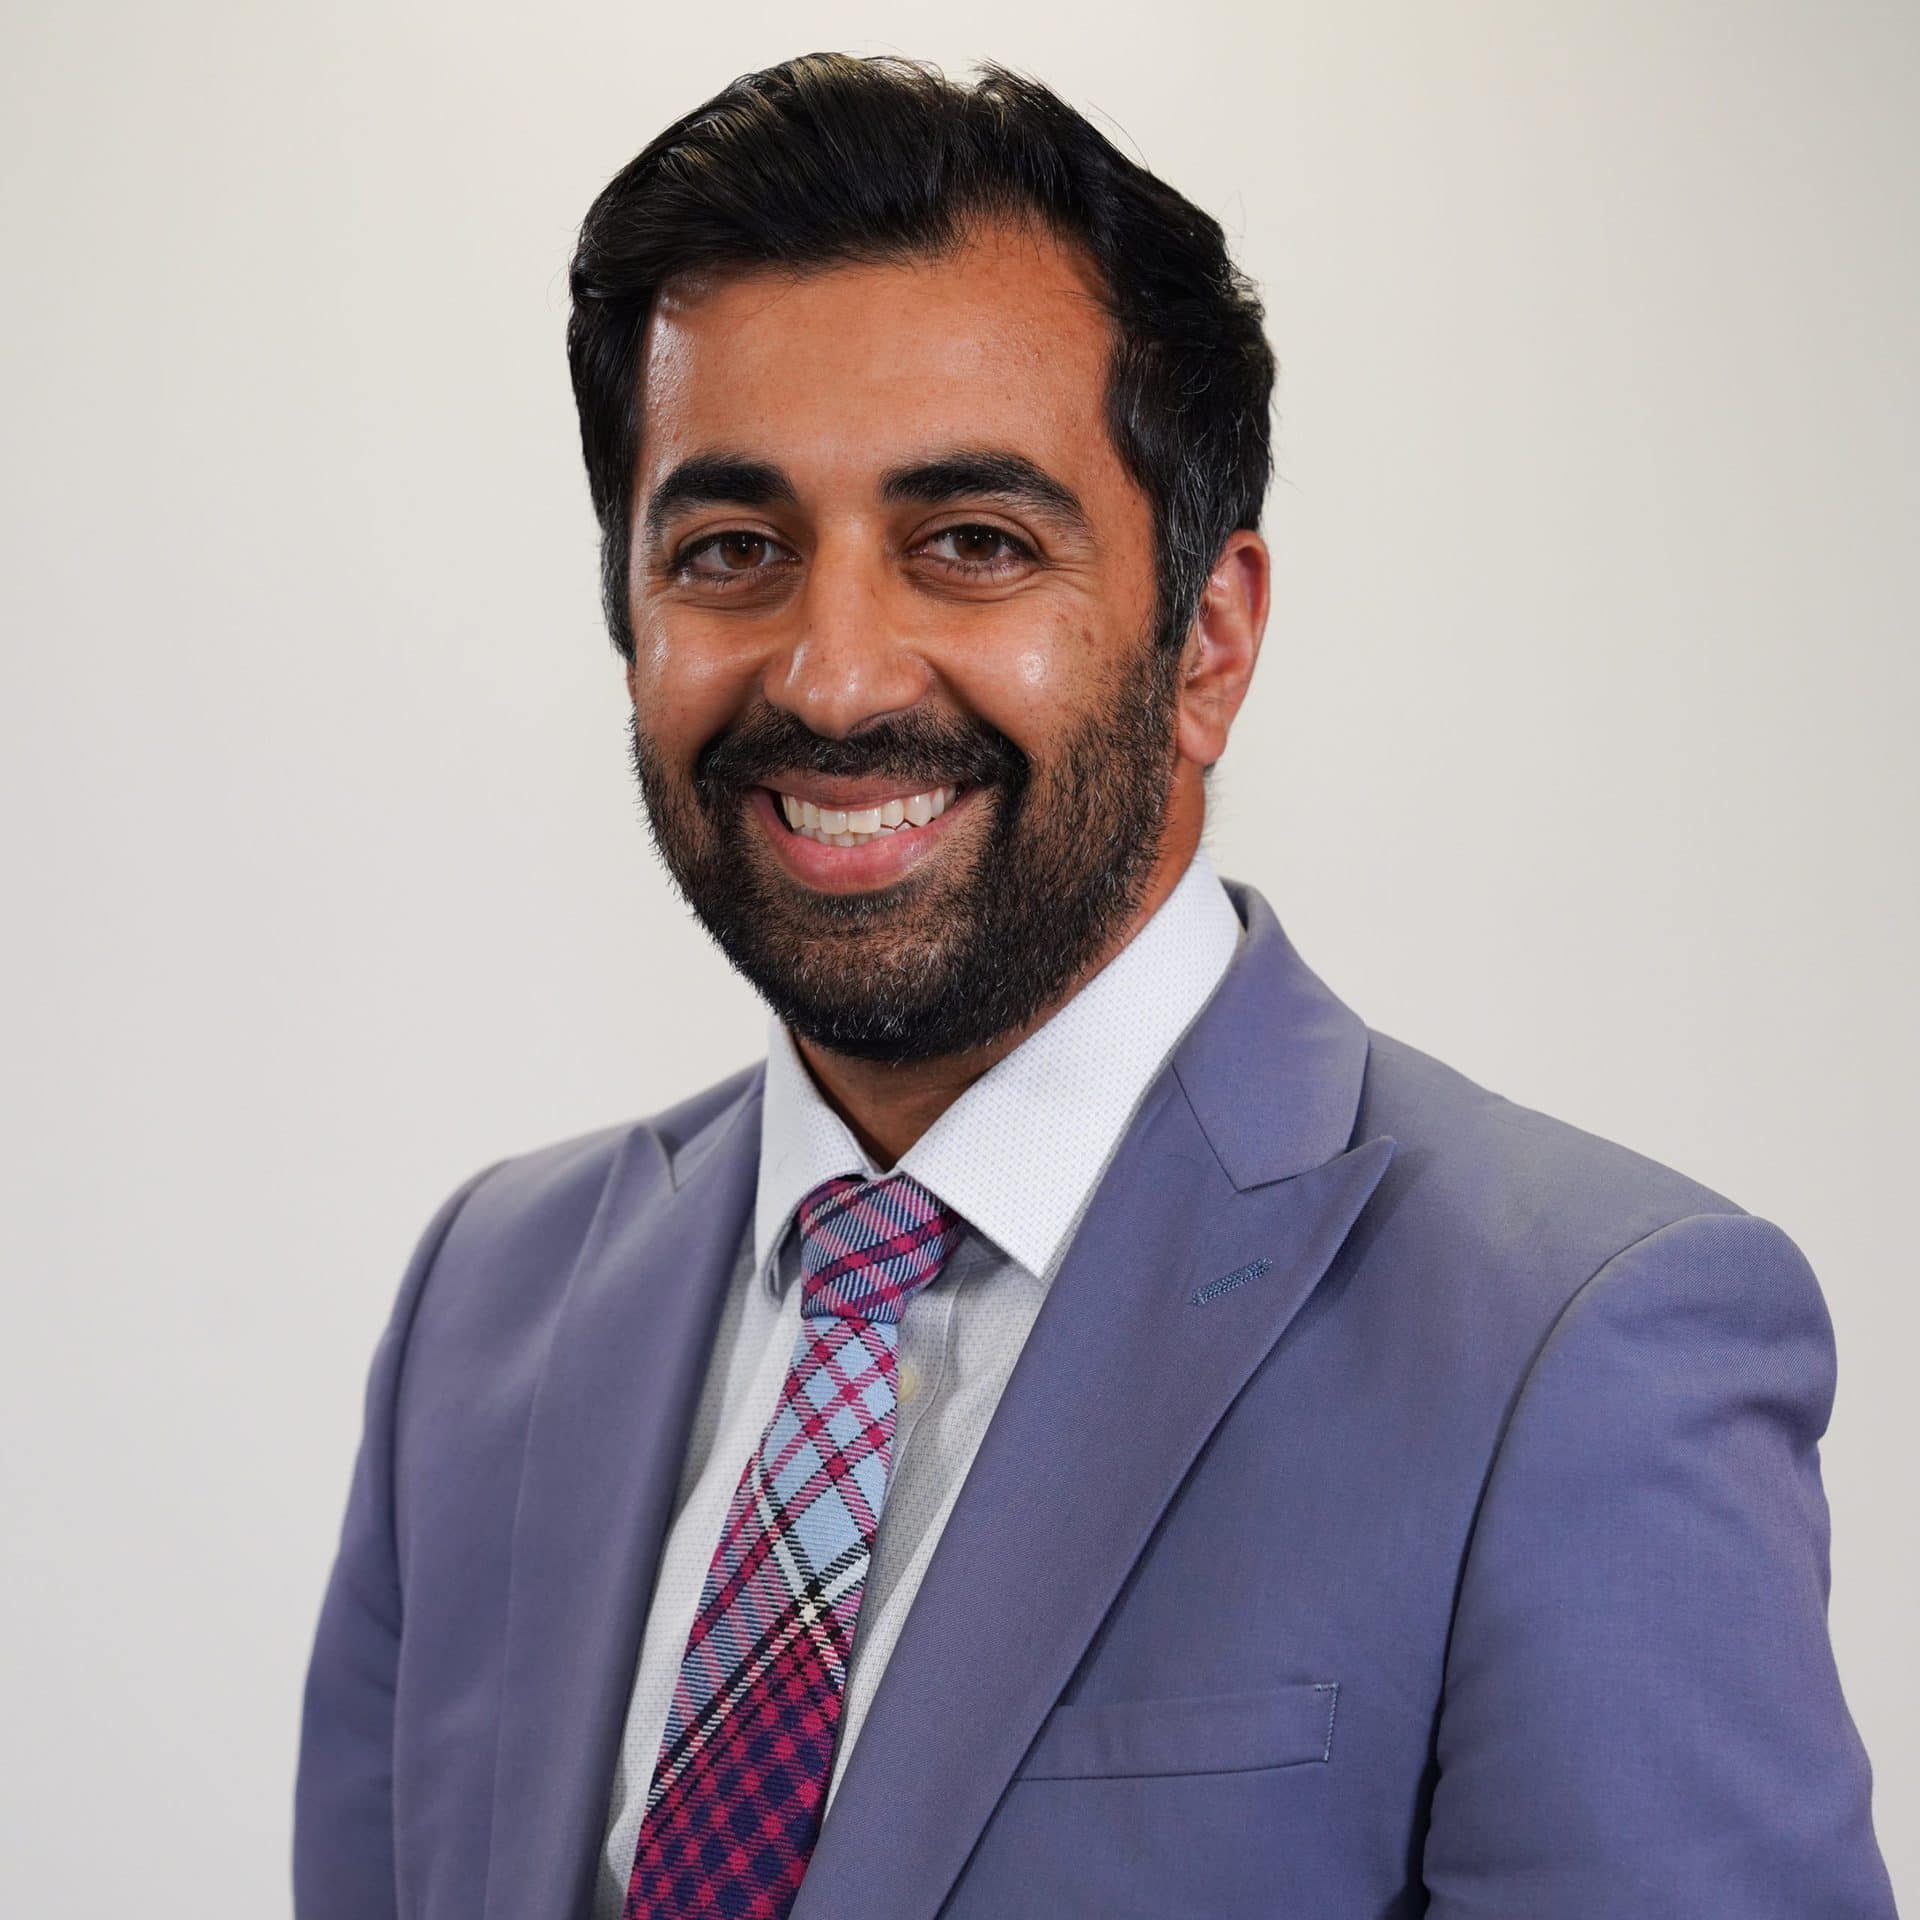 Cabinet Secretary for Health and Social Care- Humza Yousaf